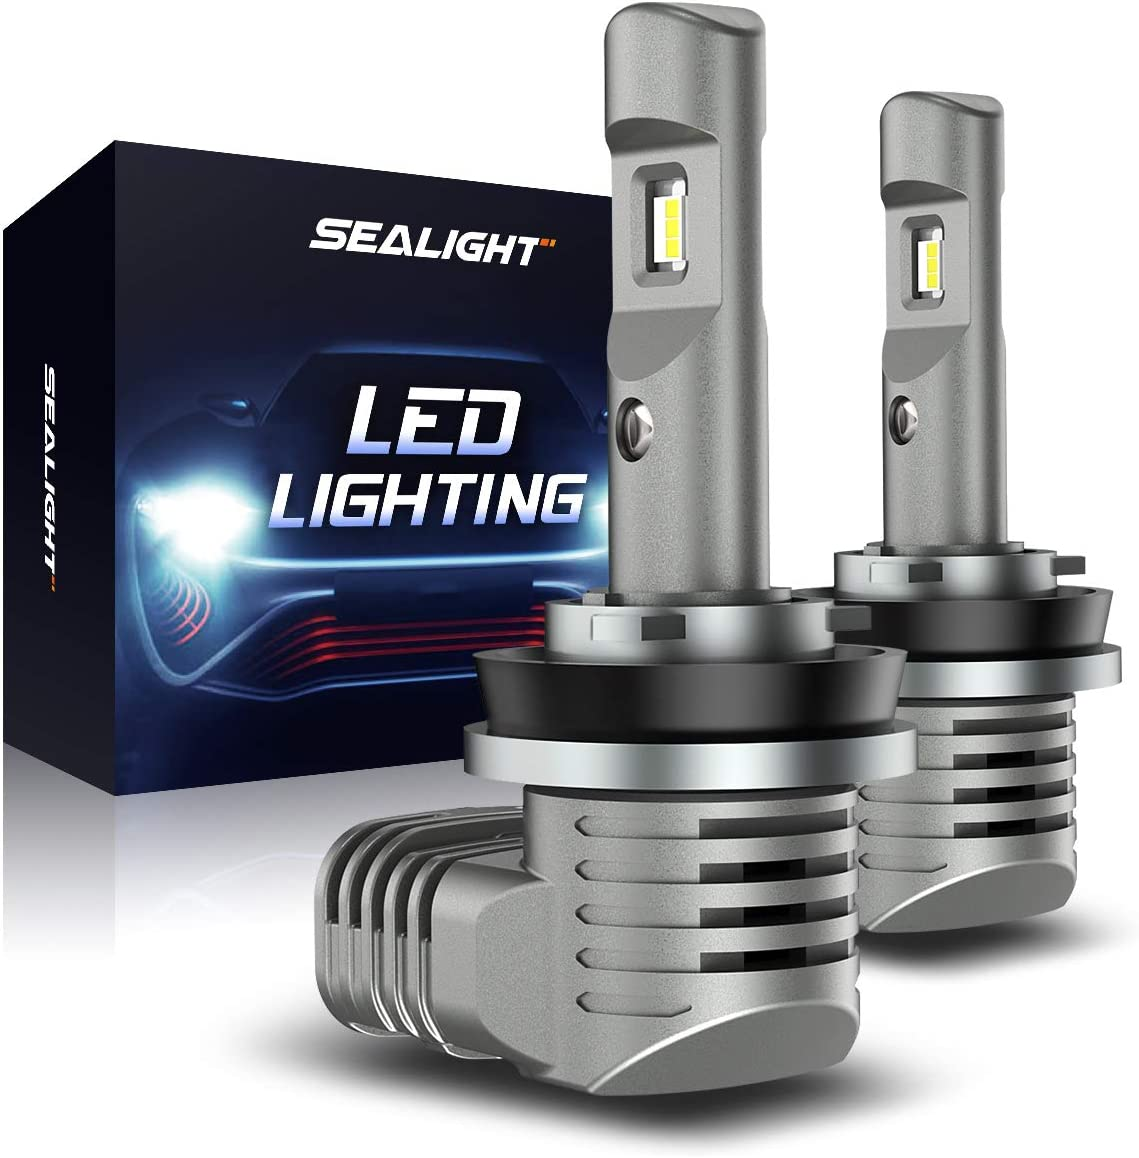 SEALIGHT Scoparc S2 H11/H8/H9 LED Headlight Bulbs, H11 LED Low Beam/Fog Light, 1:1 Halogen Bulb Design, 6000K Bright White